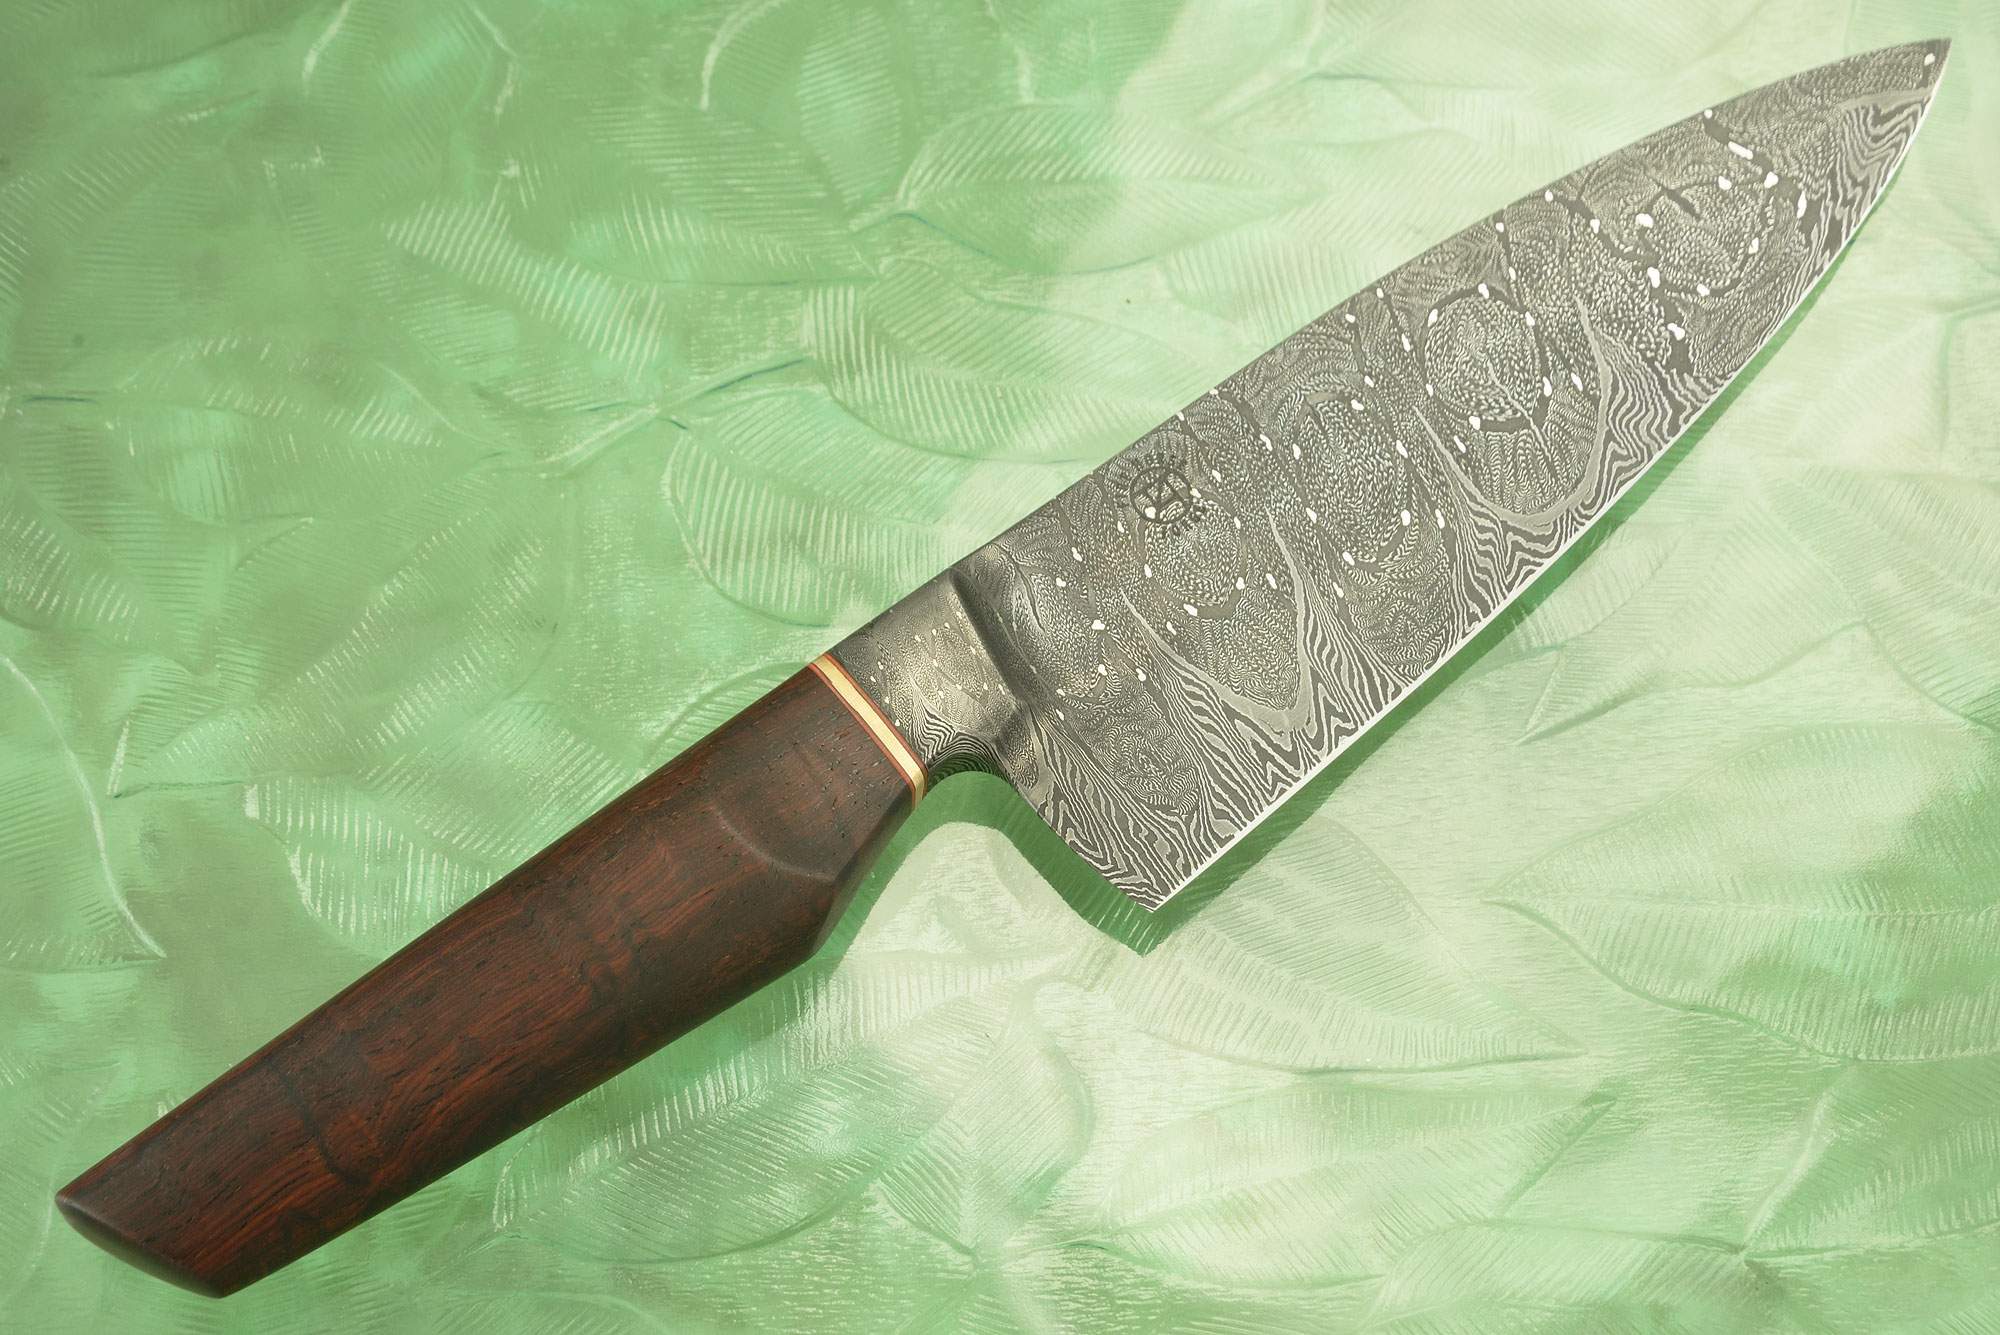 Integral Damascus Chef Knife (6-1/2 in) with Cocobolo